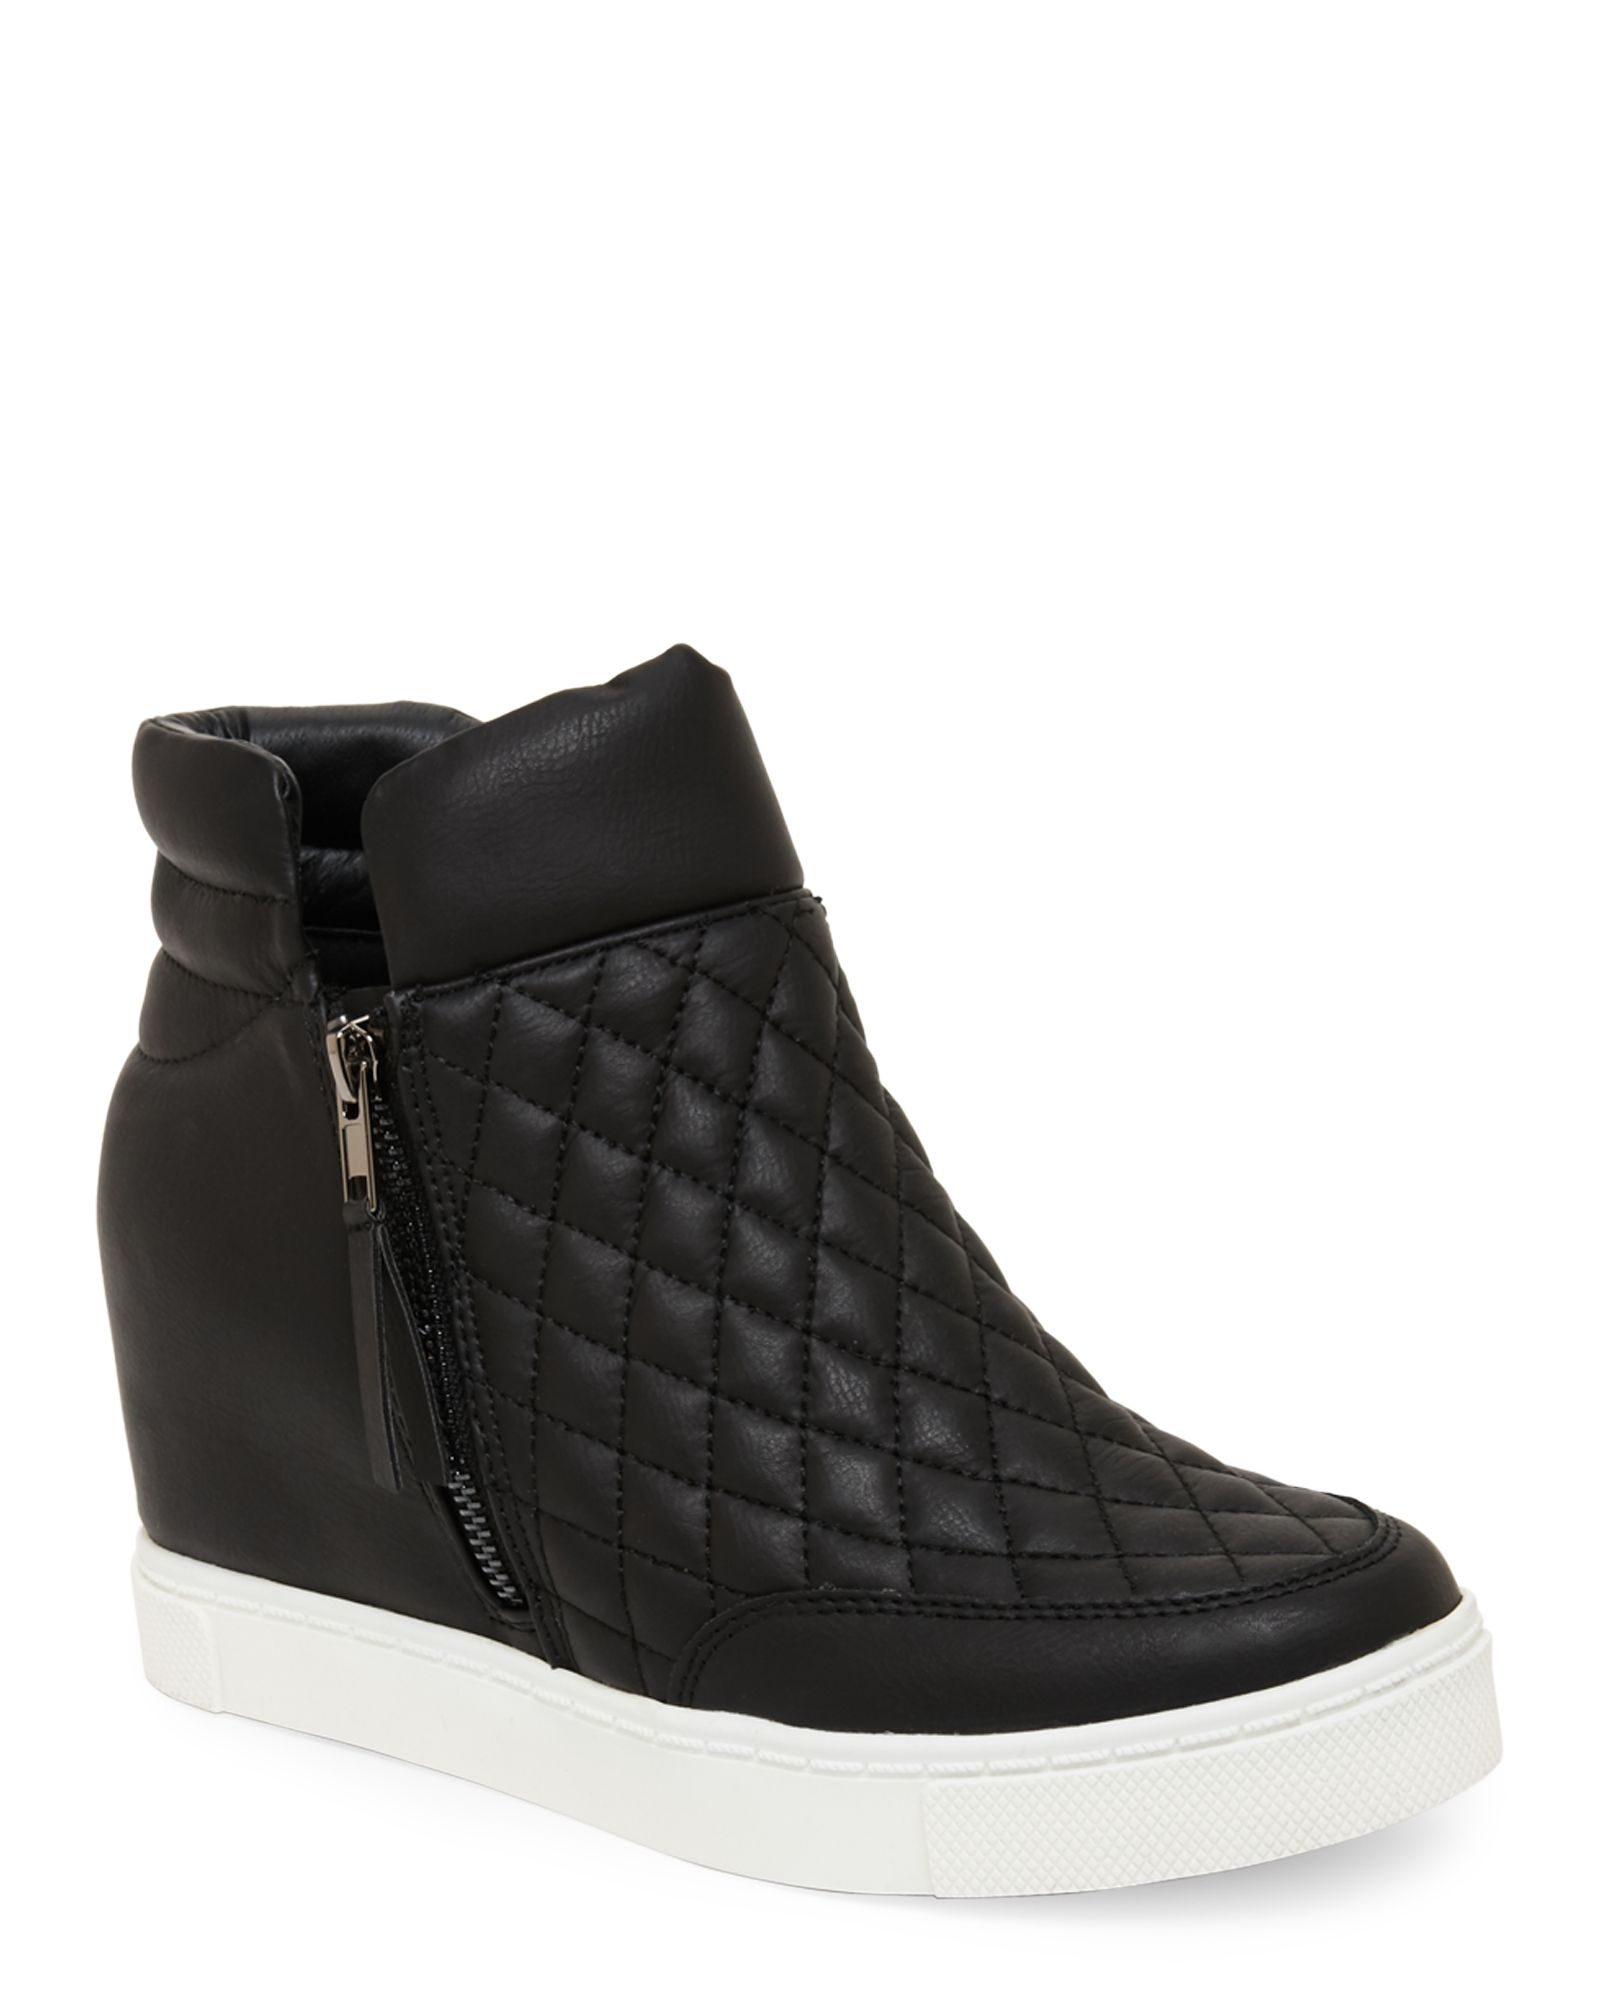 d42e9c31d2e Steve madden black linqss quilted wedge sneakers apparel jpg 1600x2000 Steve  madden wedge tennis shoes